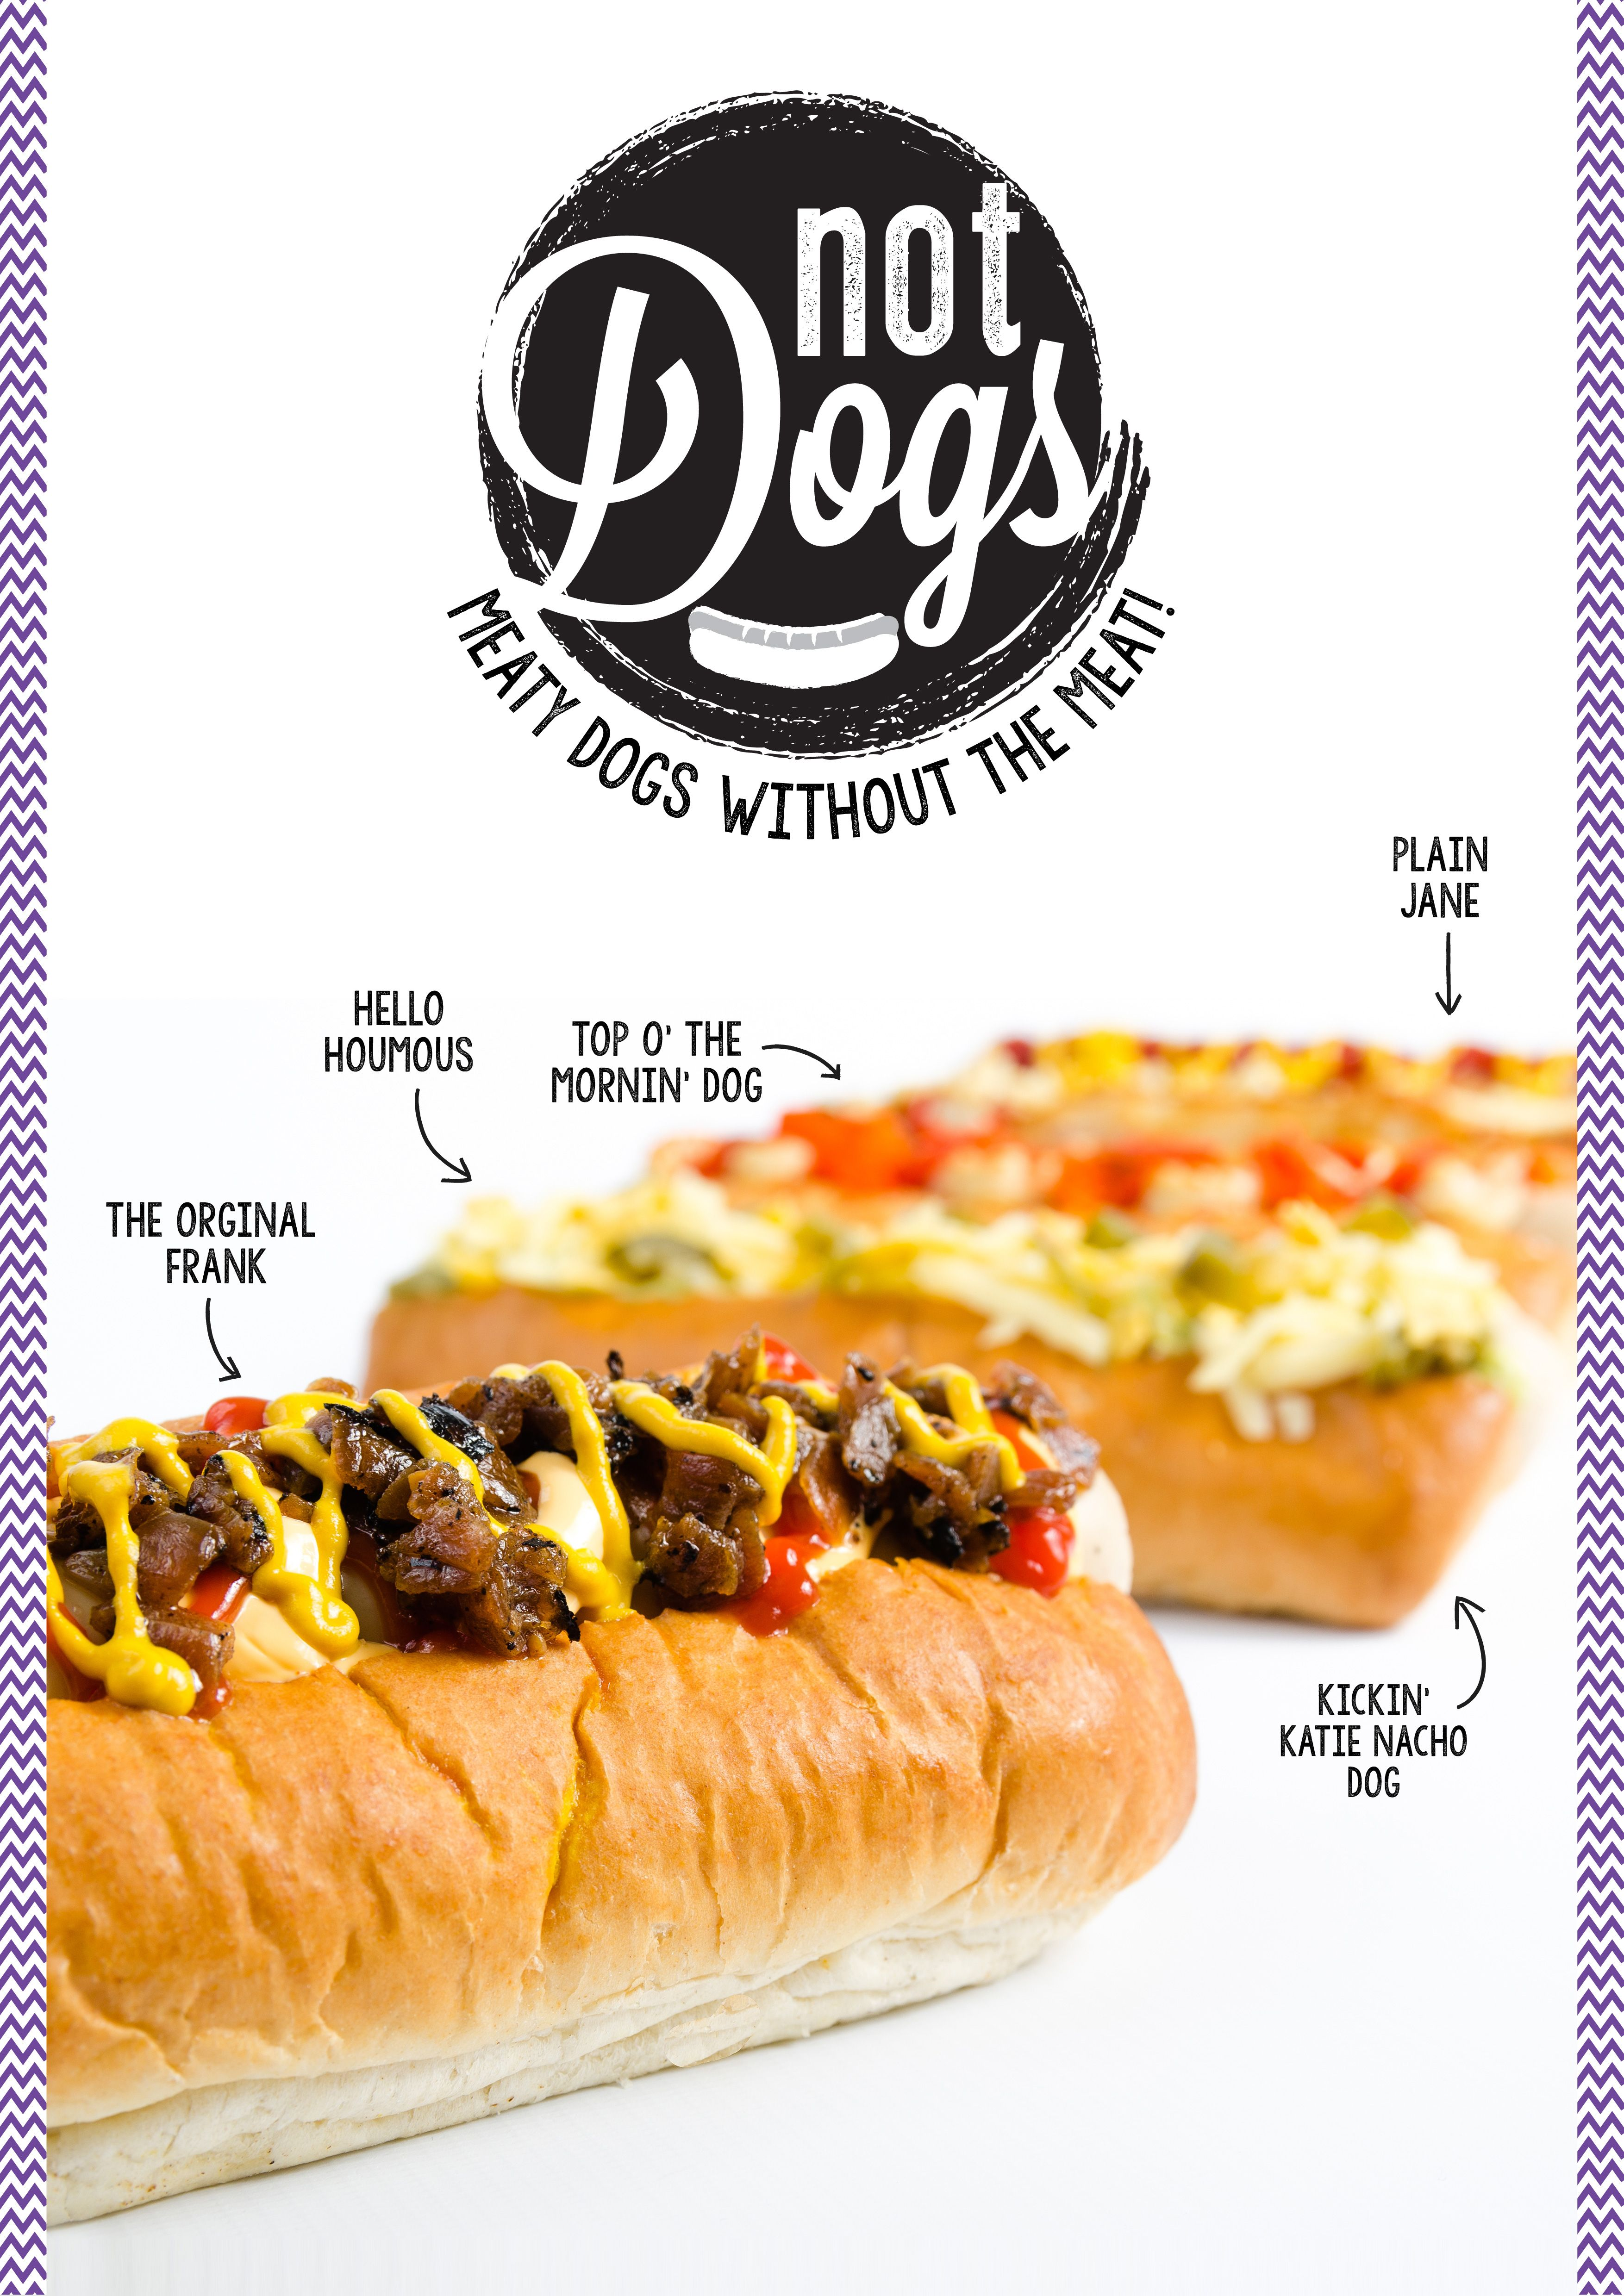 Get Those Tastebuds Going This Friday Night By Browsing The Notdogs Summer Menu Yes Please Http Www Notdogs Co Uk Food Vegetarian Fast Food Summer Menu